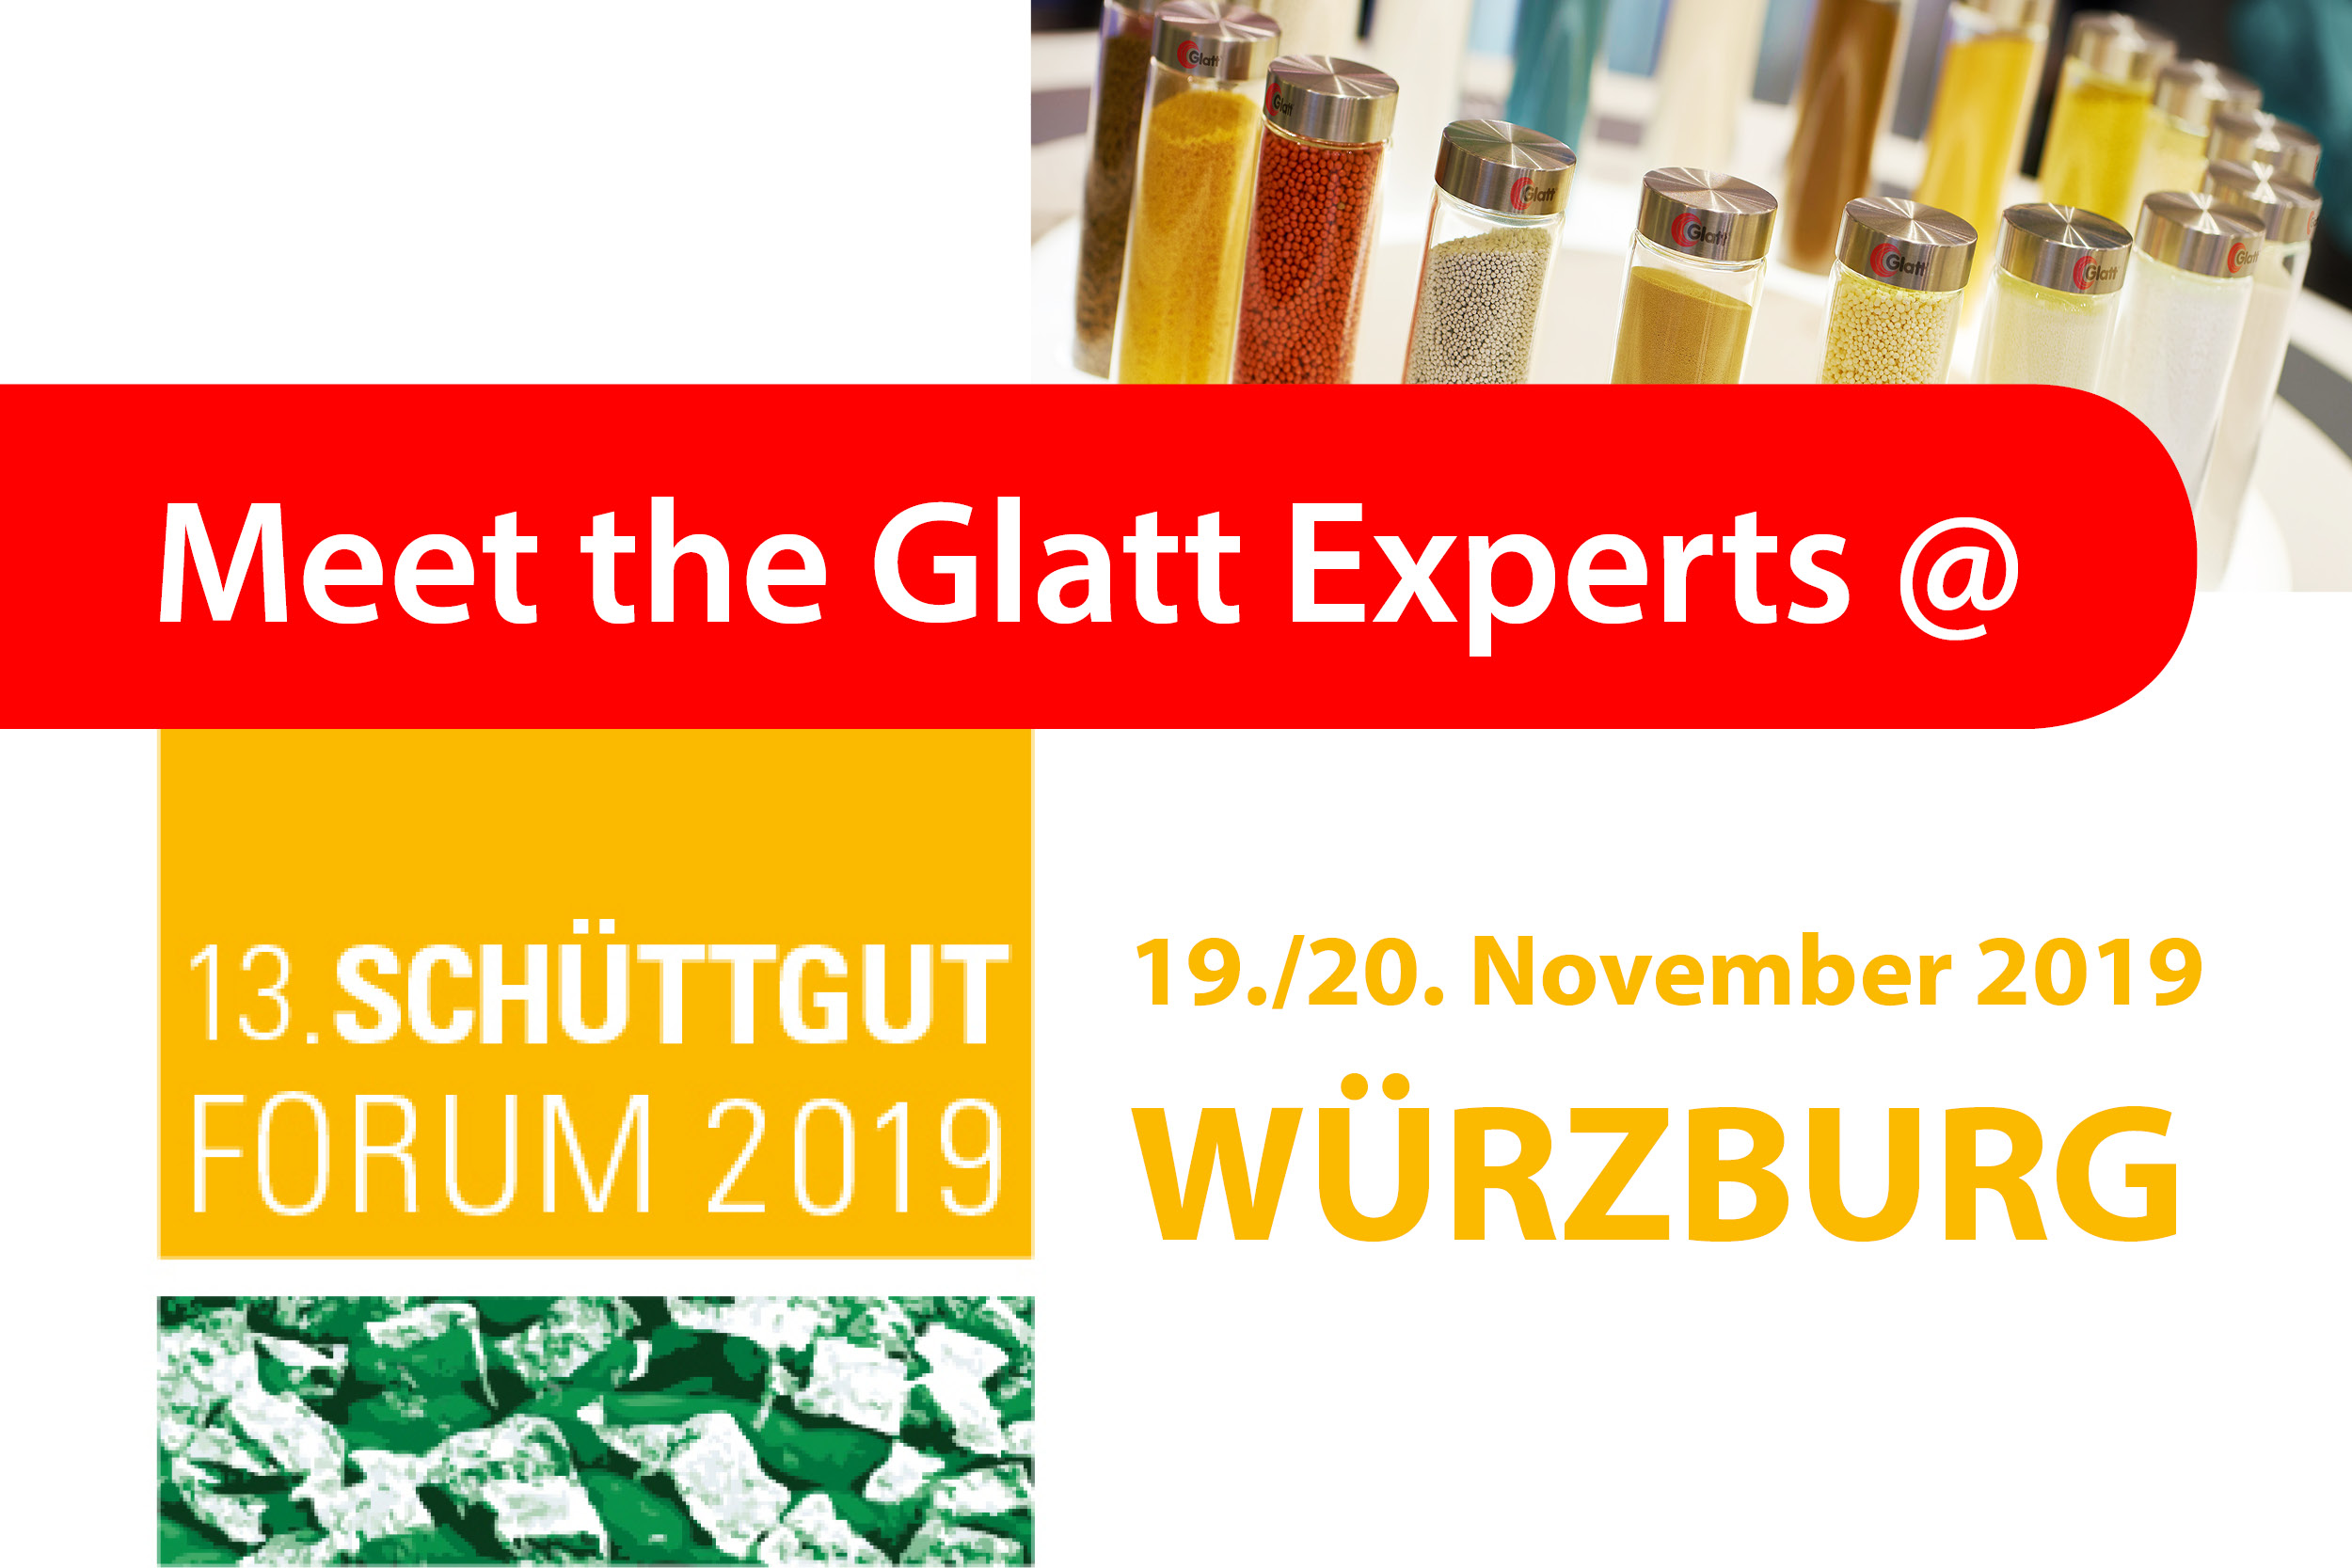 Meet the Glatt Experts @ Schüttgutforum 2019 in Würzburg